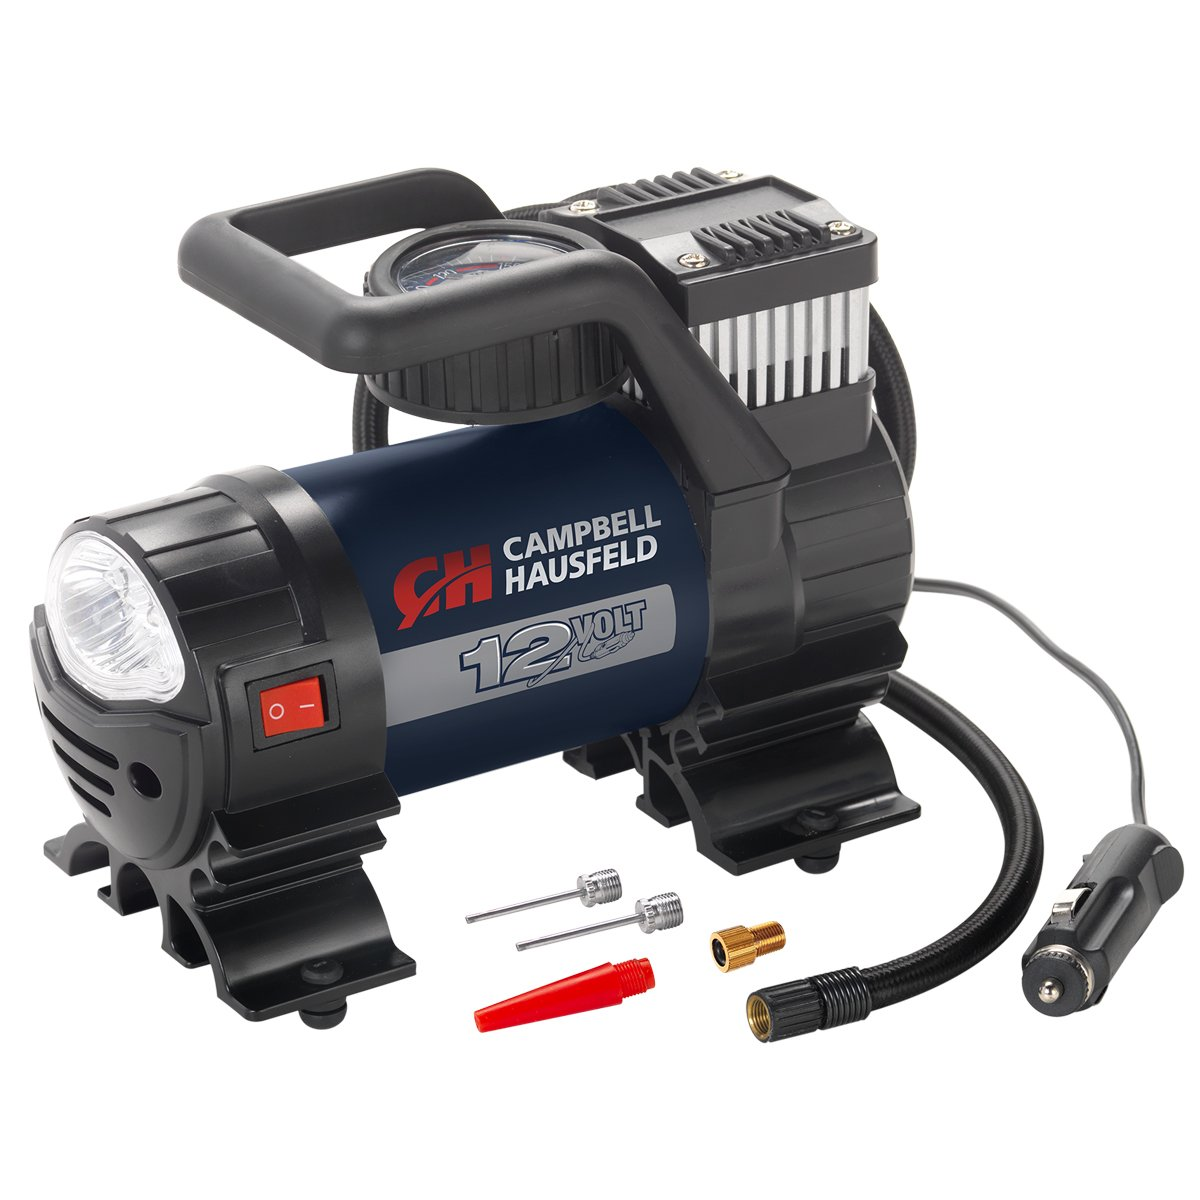 Mighty Portable Inflator Campbell Hausfeld AF010400 12V Pump with Safety Light /& Accessories 150 PSI Air Compressor